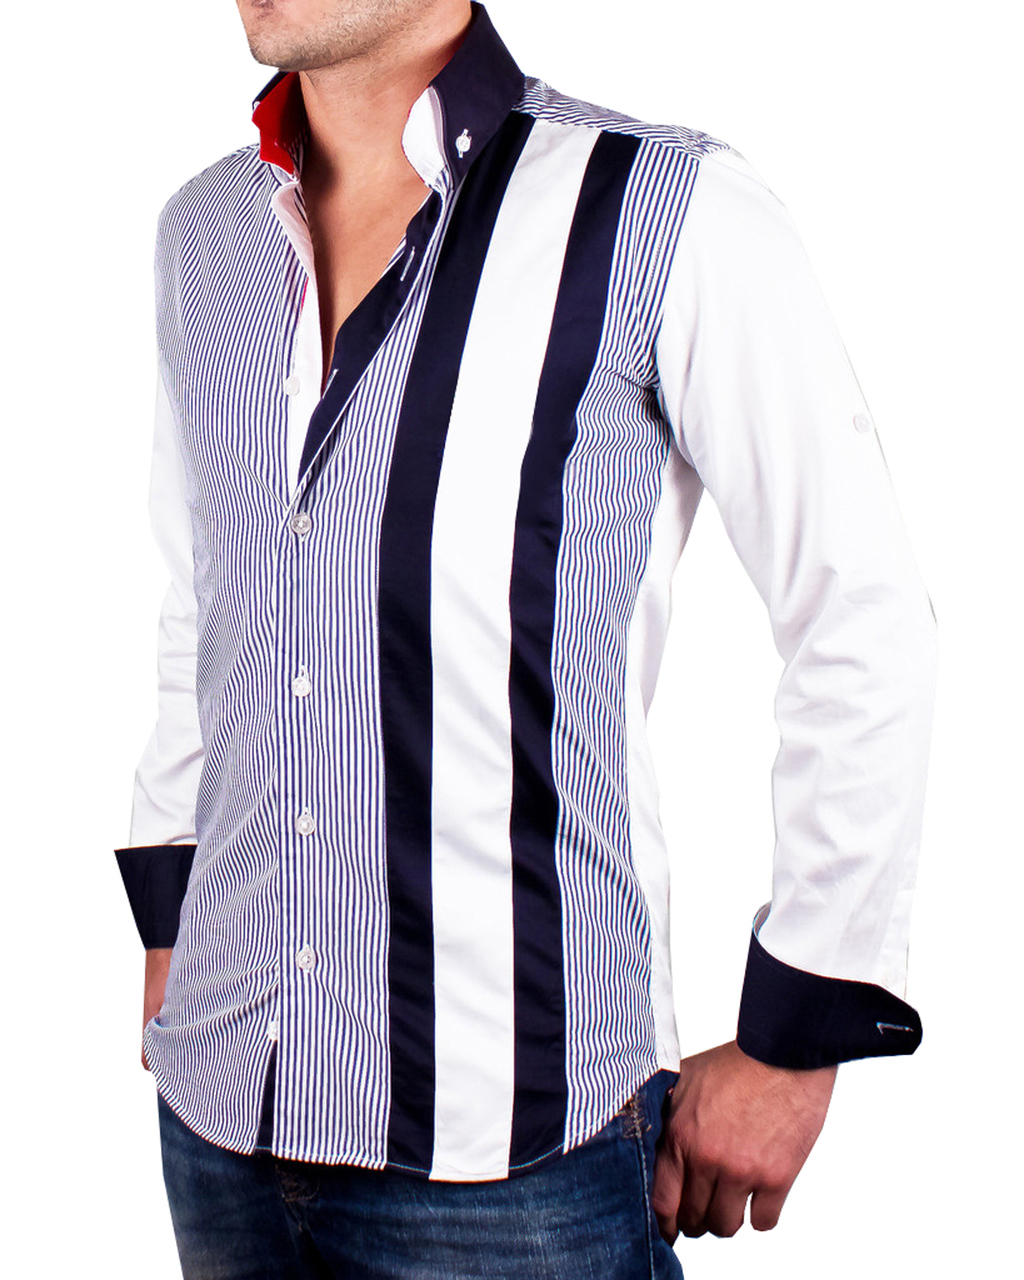 Men 39 s navy and white striped italian style shirt for Navy striped dress shirt